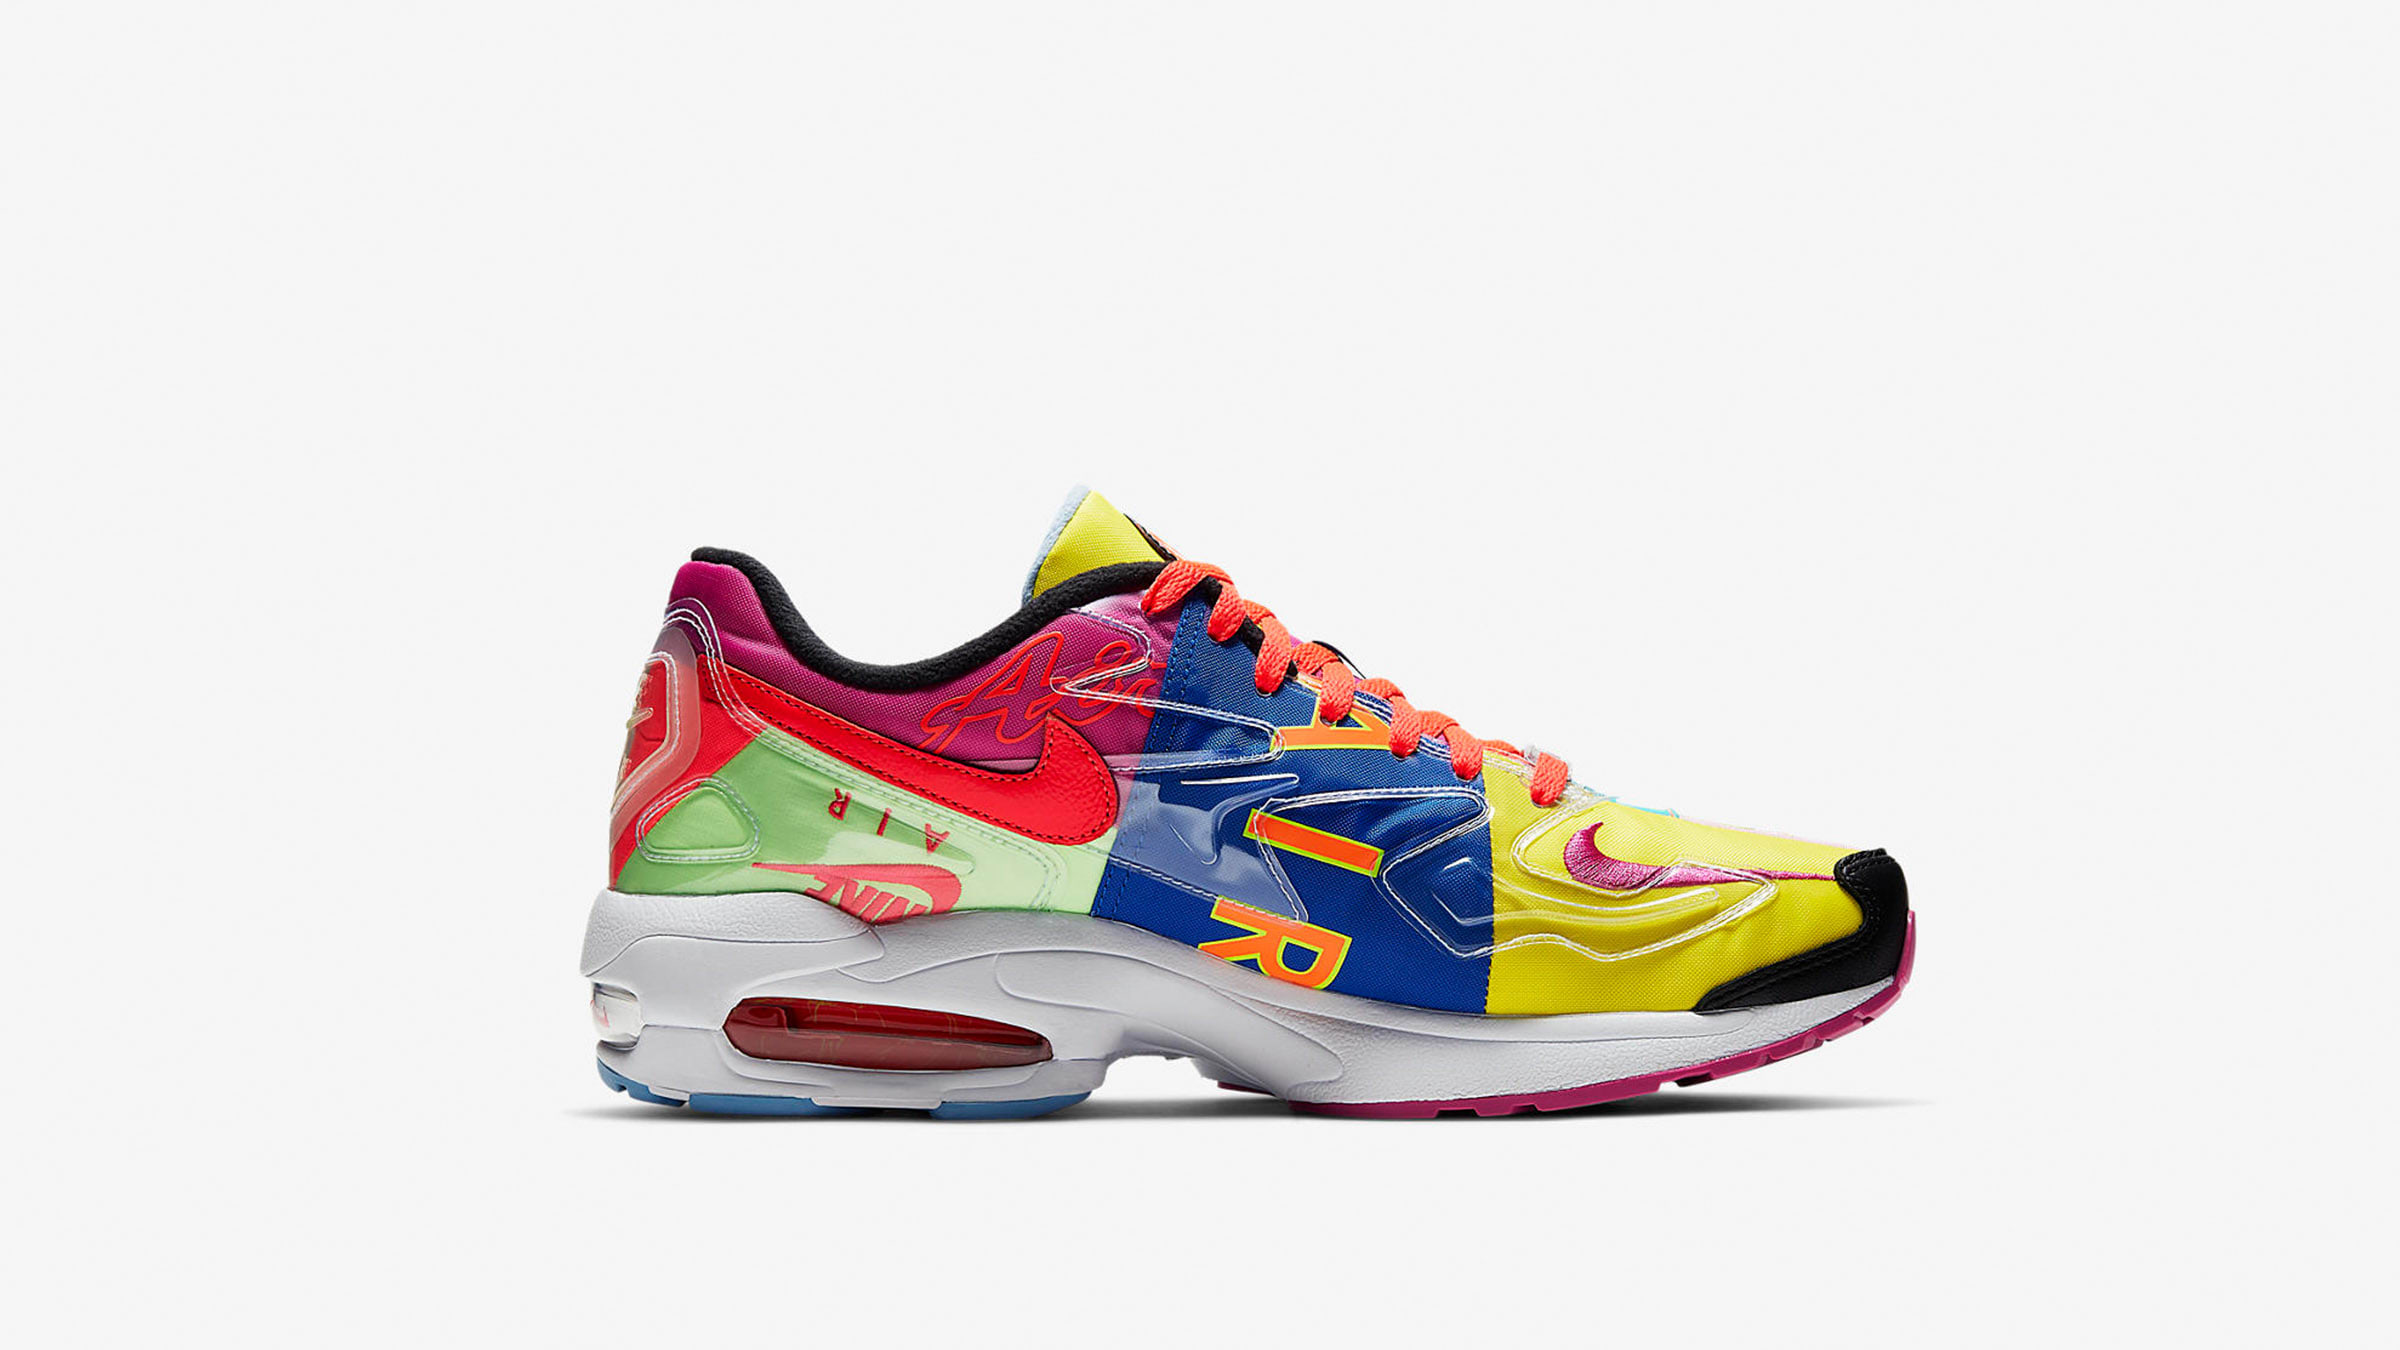 uk availability ee1b5 31abb Nike x Atmos Air Max 2 Light. Black   Bright Crimson£135. the vibrancy of  Atmos  cross-pollinating ideas is translated through the DIY articulation